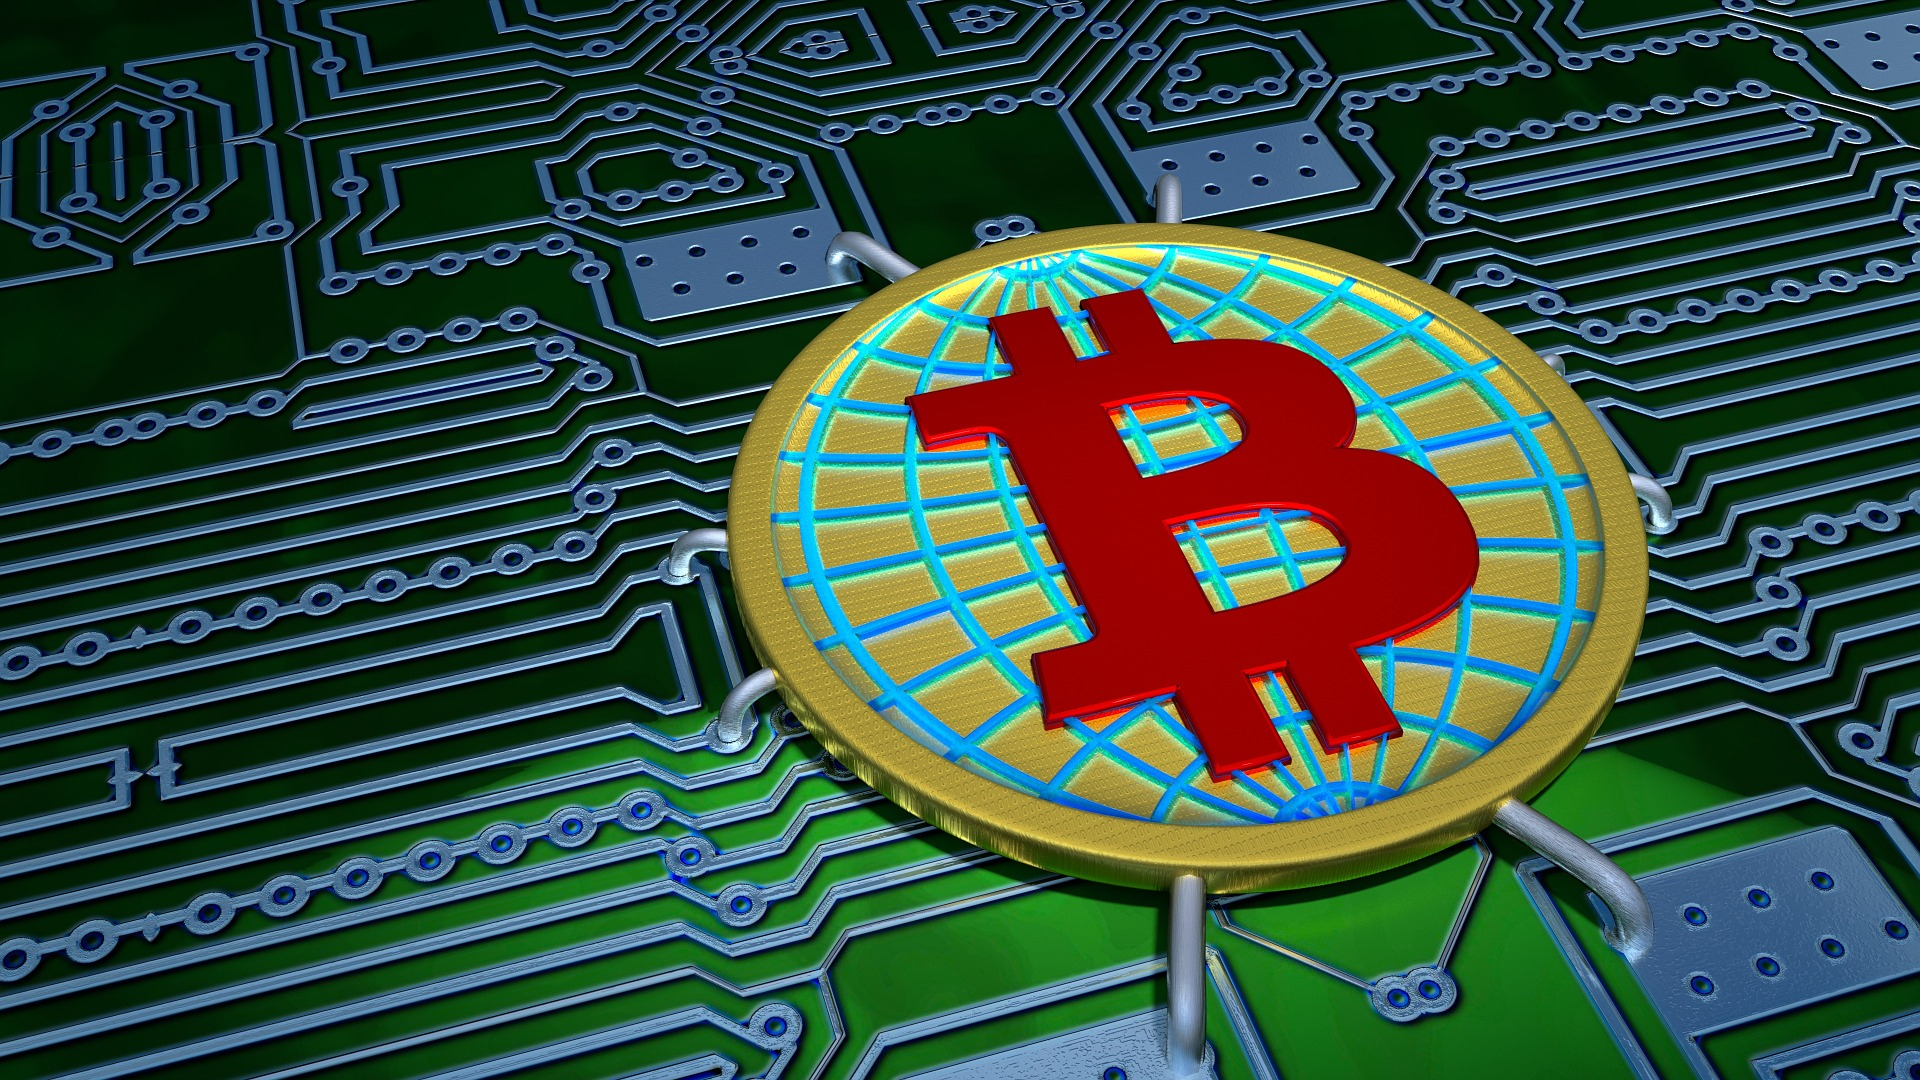 Bitcoin: The Future of Digital Payments?